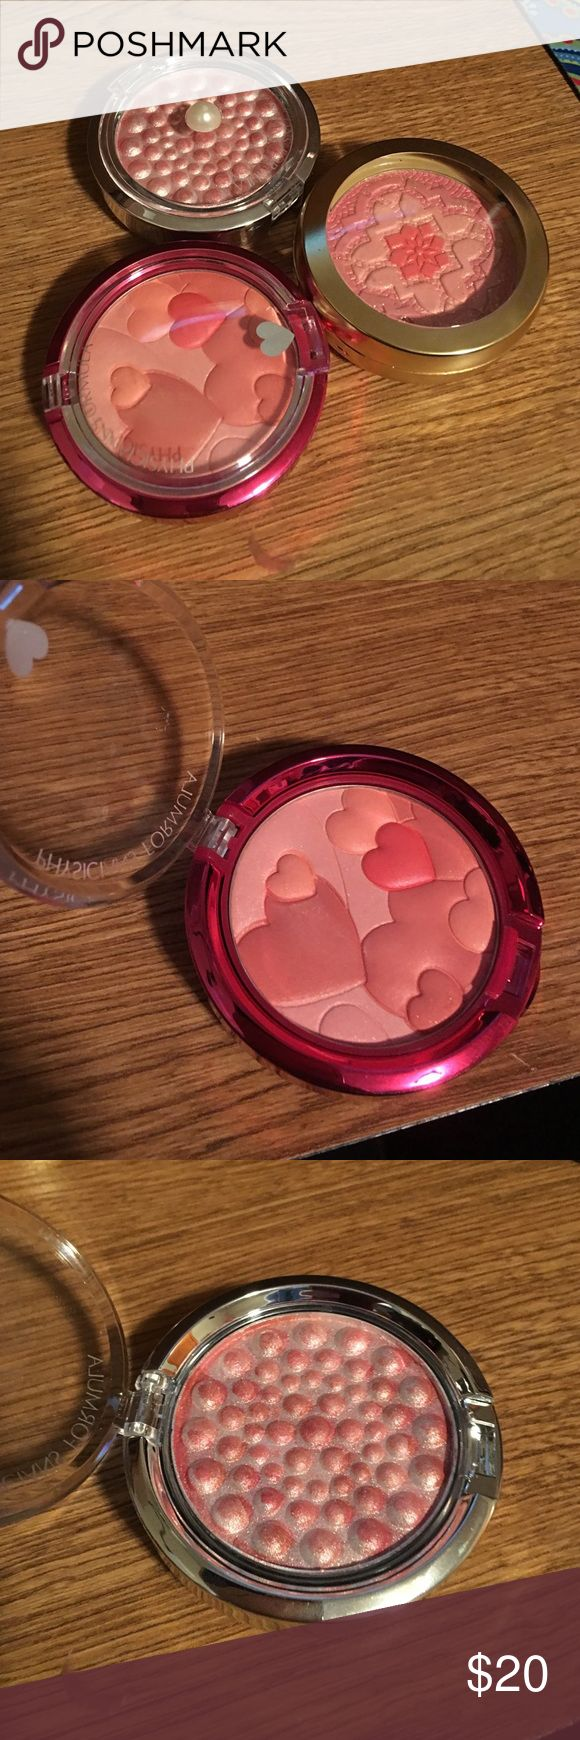 Physicians Formula blushes I have a ton of blushes and I don't use these. Used like once... $20 for all three...no trades please! Physicians Formula Makeup Blush